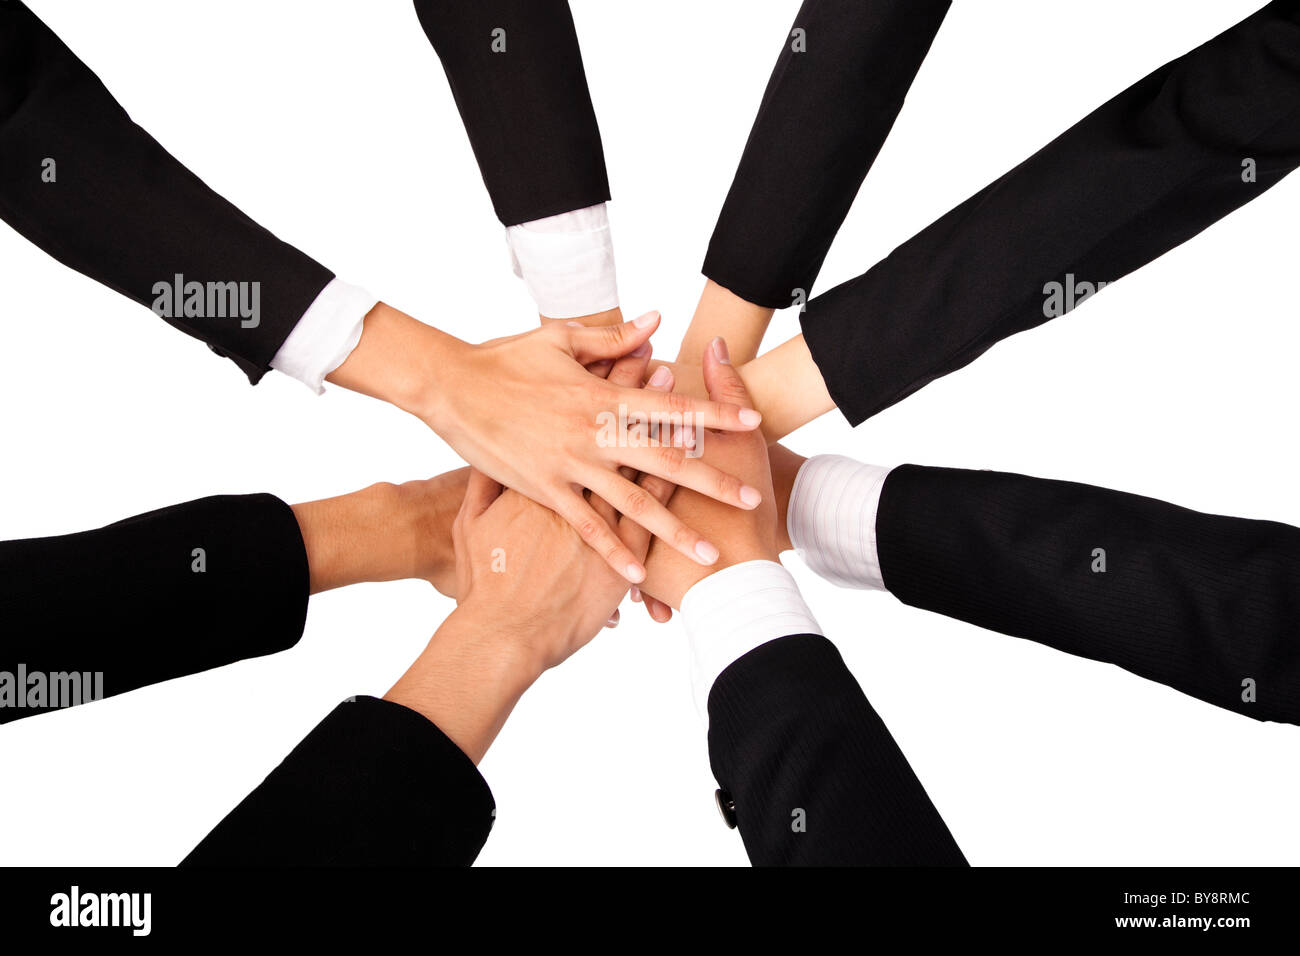 Teammate's Hands on top of each other. - Stock Image